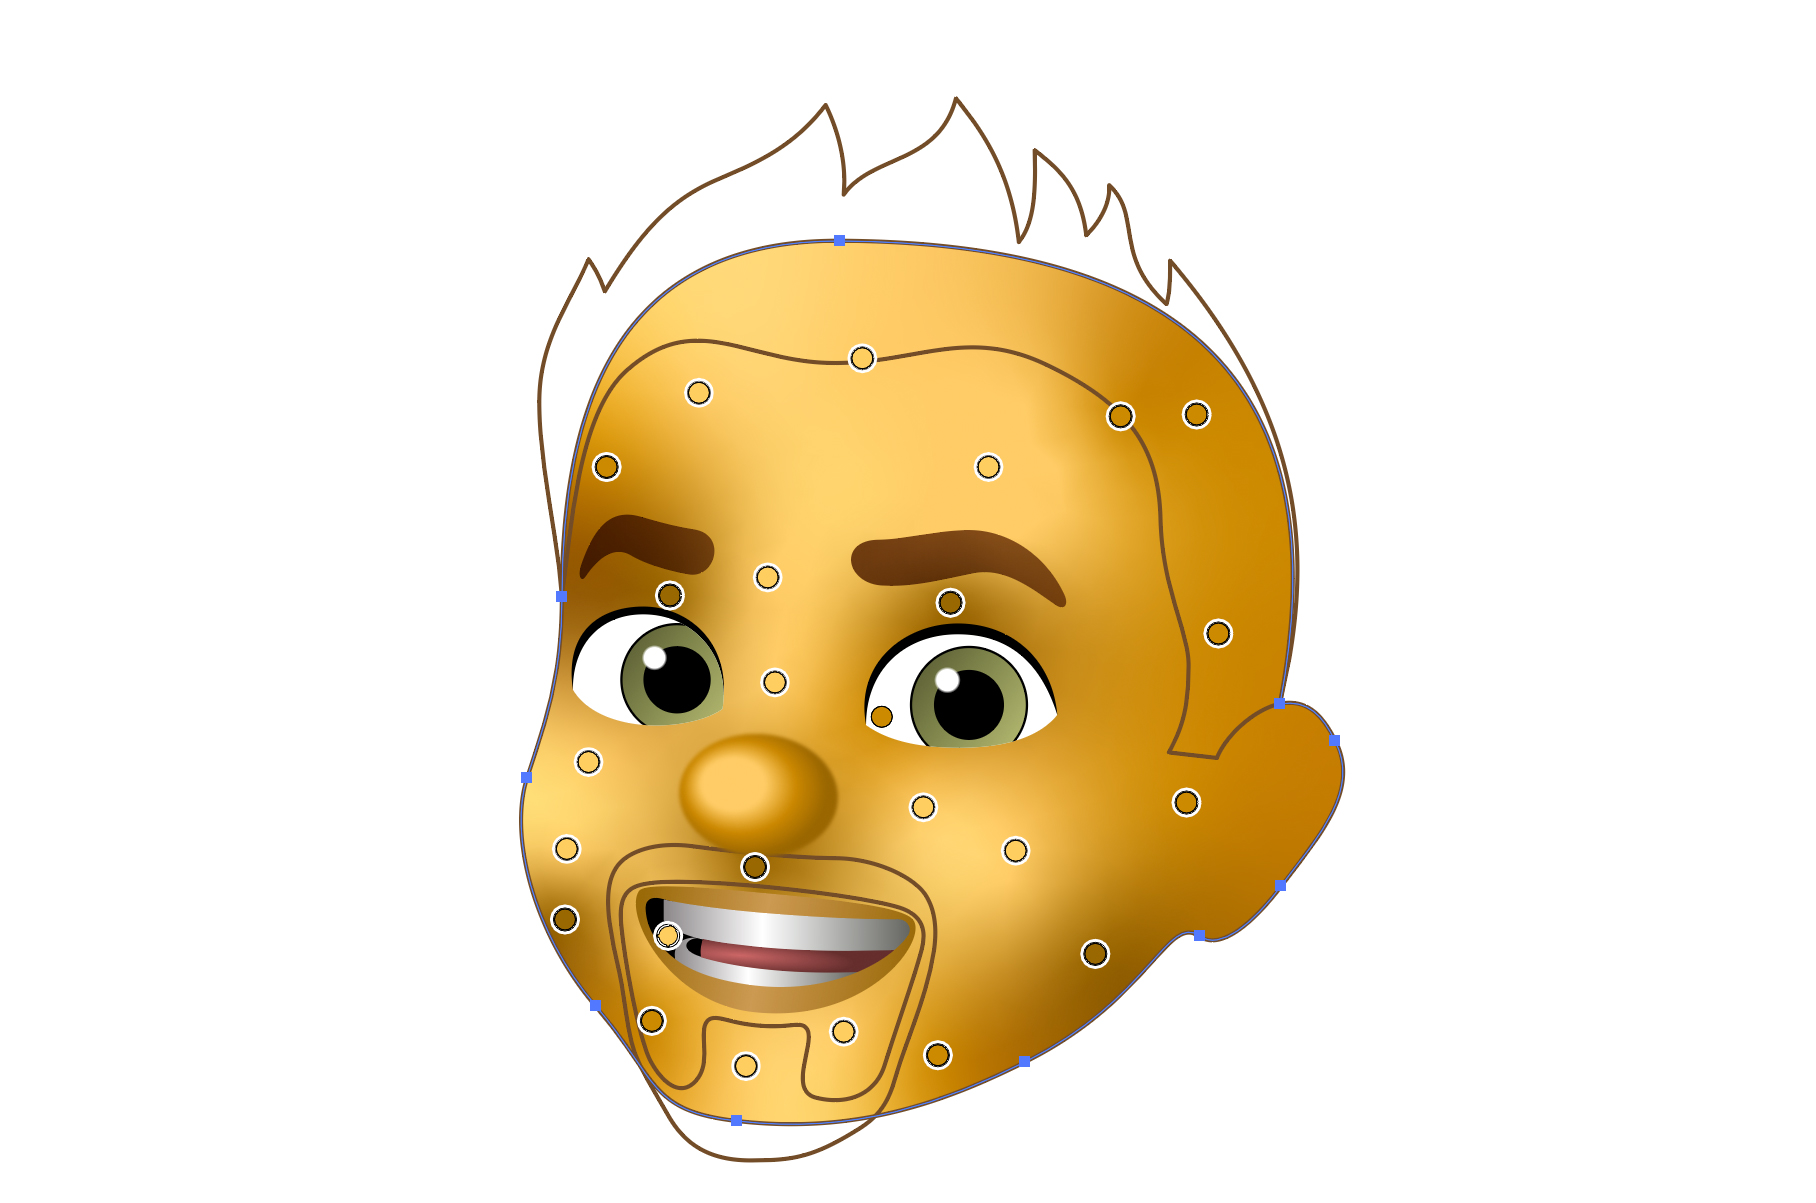 Deke's memoji with points deliniating the freeform gradient that colors his face